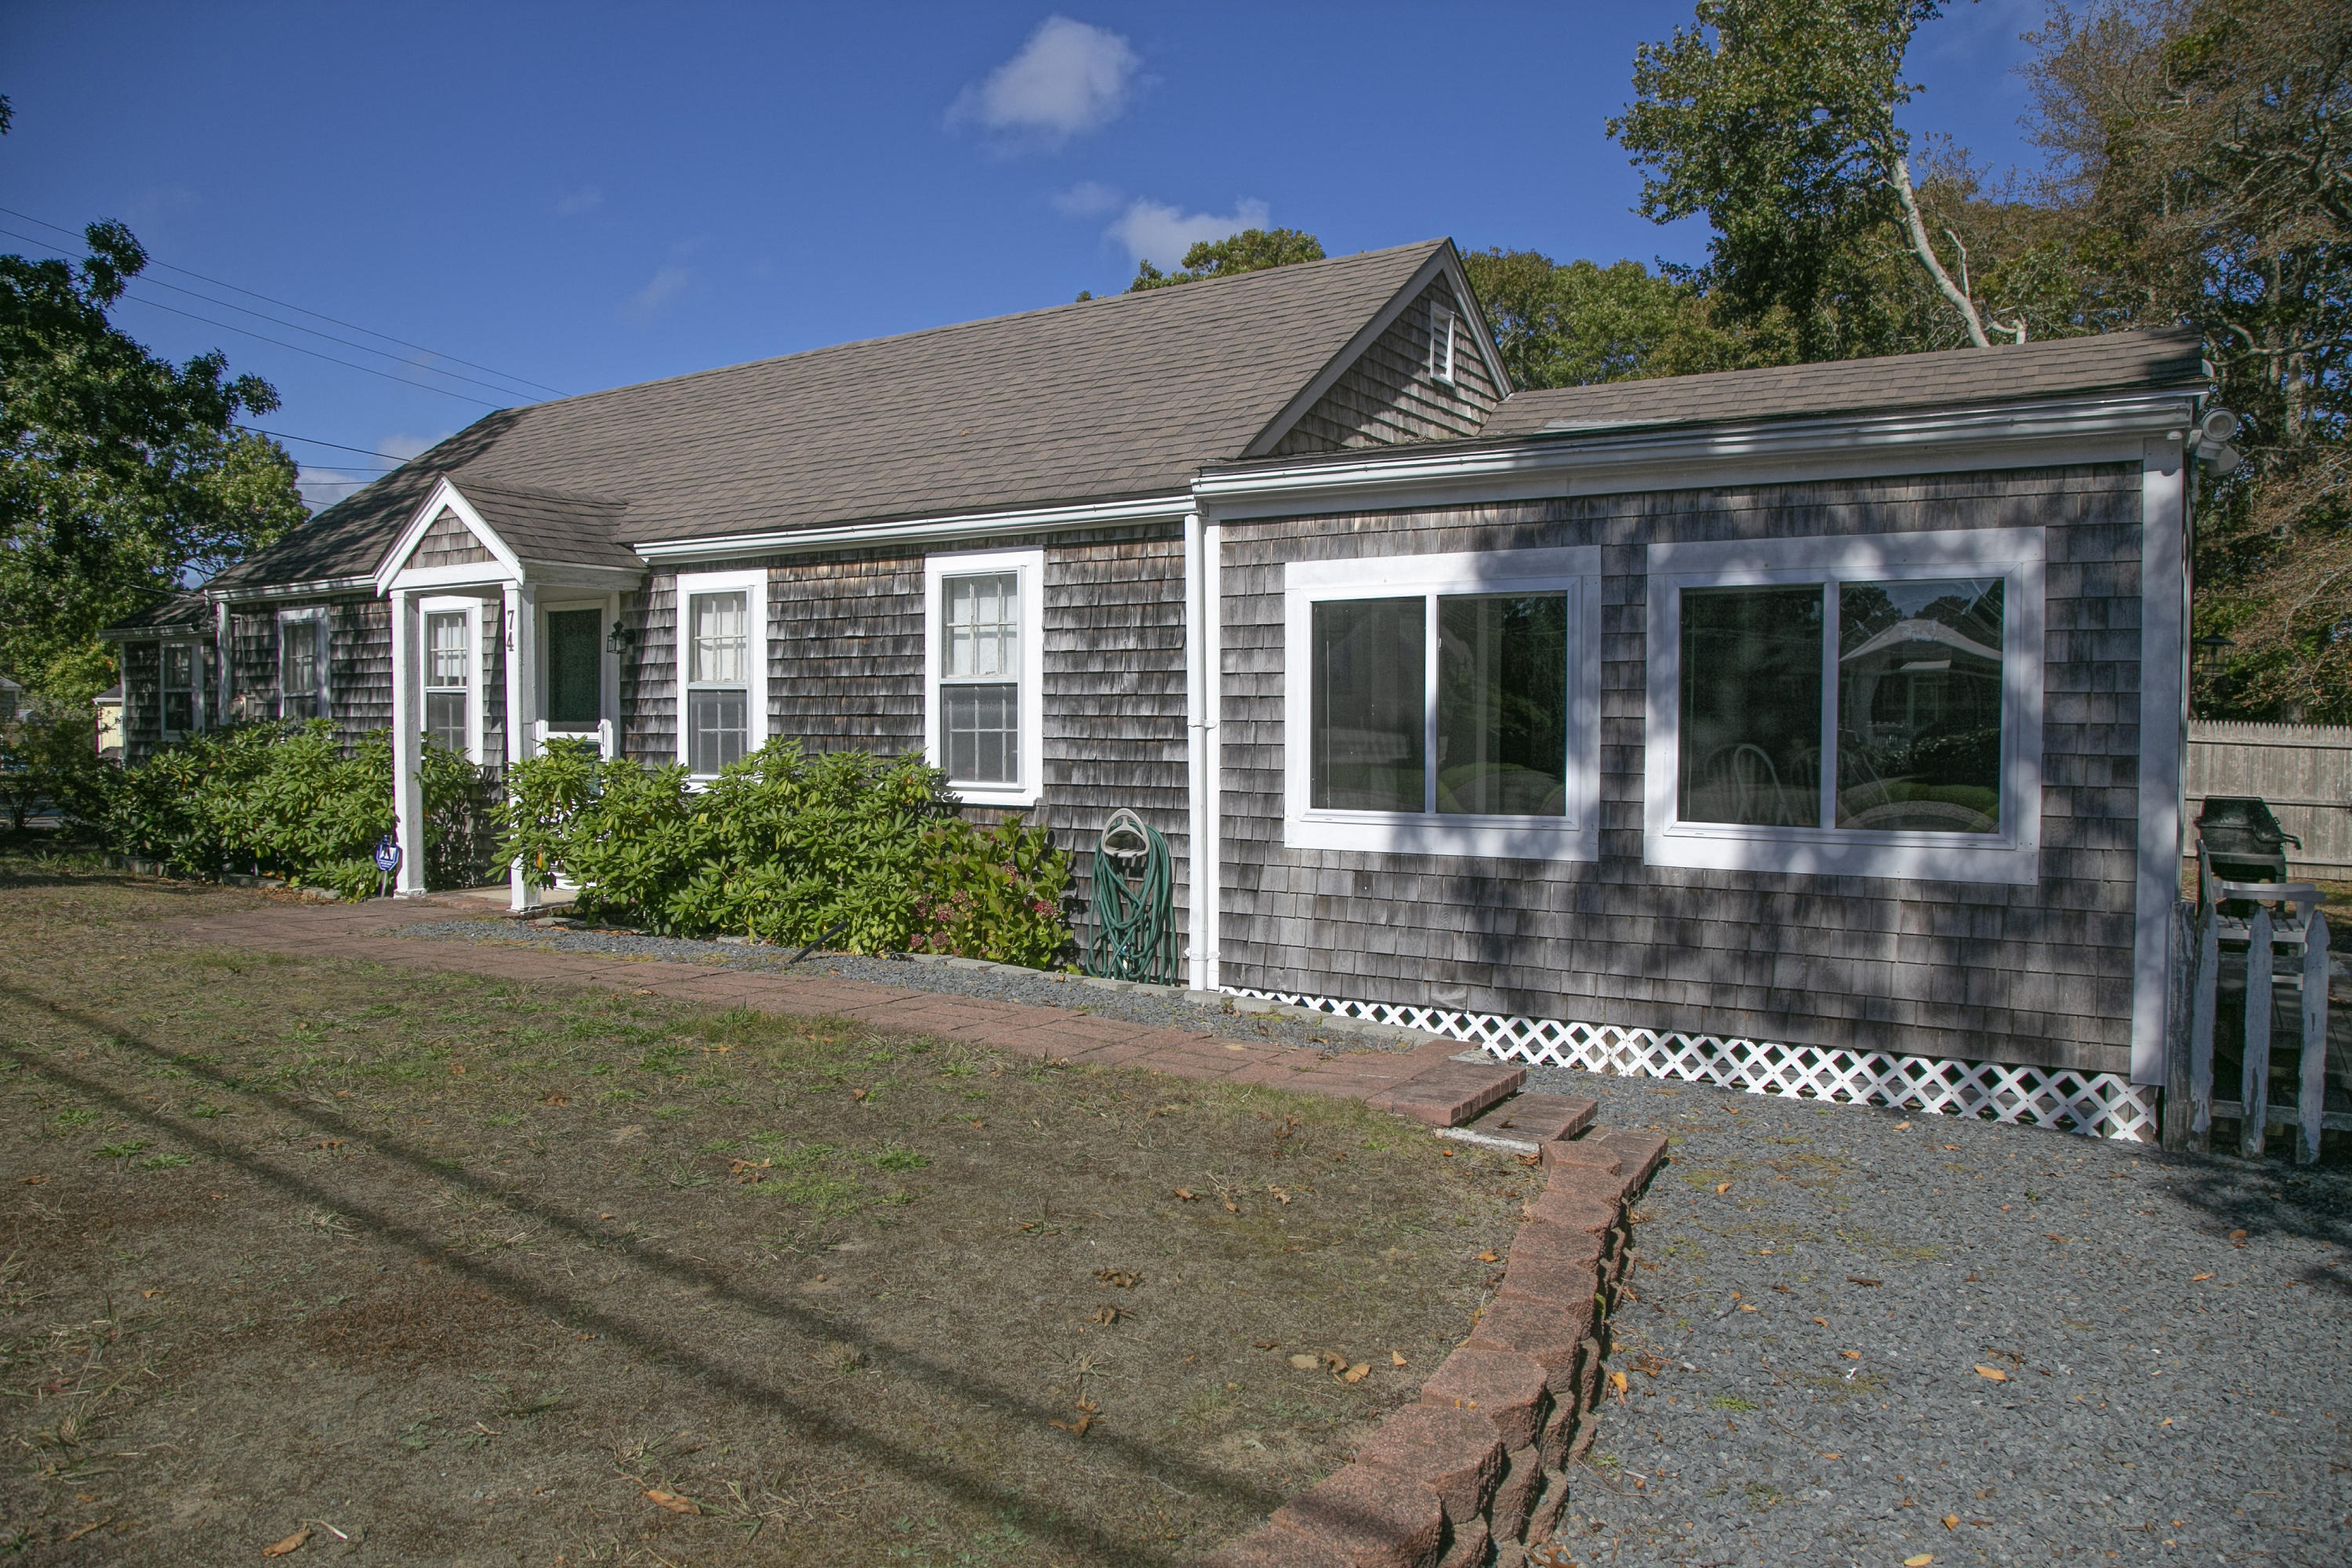 74 Wilfin Road, South Yarmouth MA, 02664 details